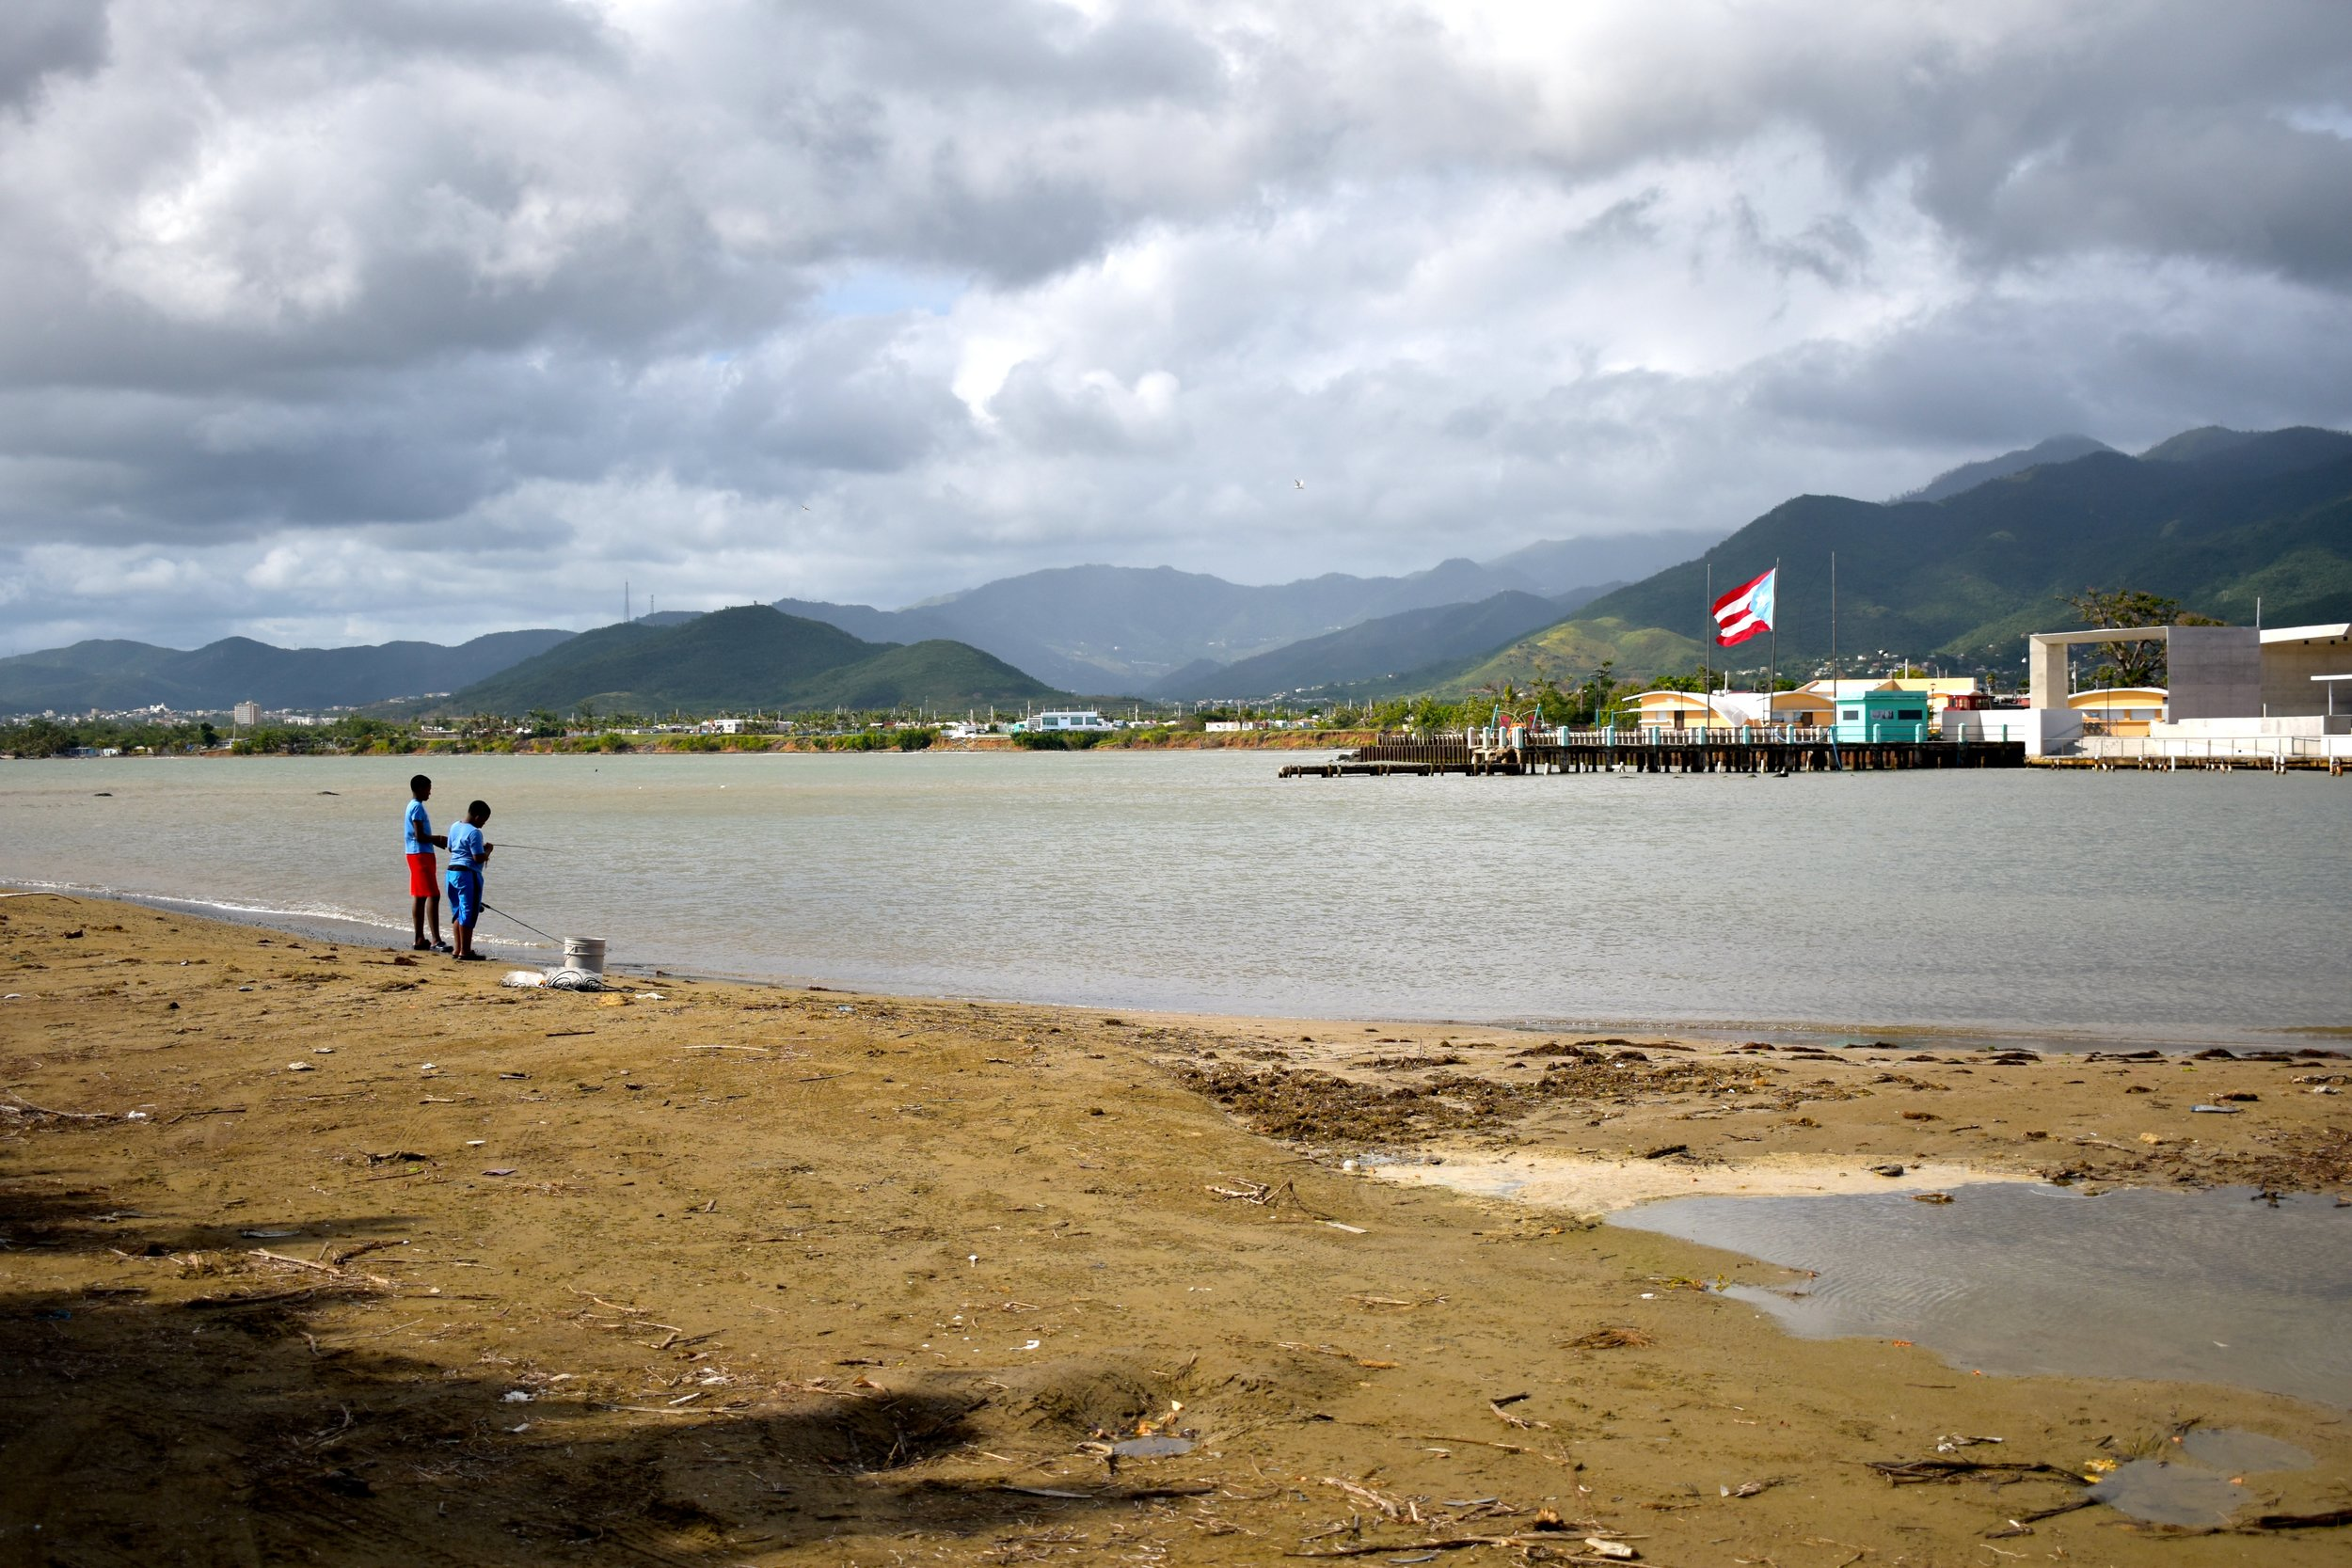 (Photo: Boys Fishing in Arroyo, Puerto Rico, Hilda Lloréns)